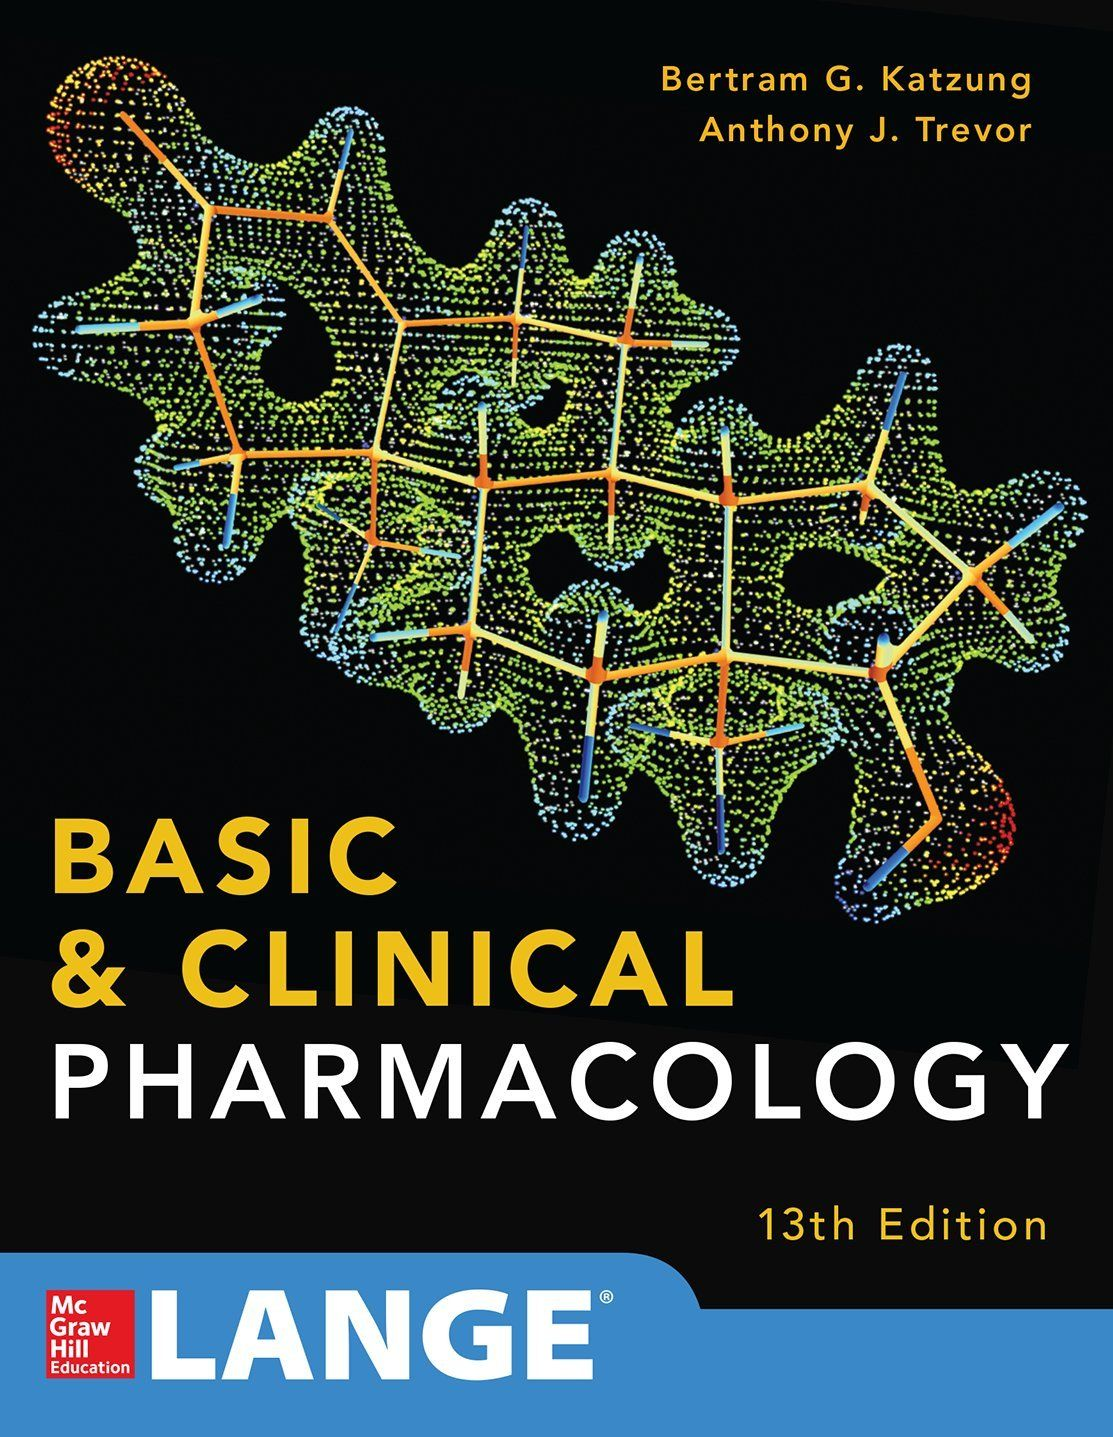 Basic and clinical pharmacology bertram g katzung susan b basic and clinical pharmacology bertram g katzung susan b masters anthony j trevor main library 6151 bas fandeluxe Choice Image